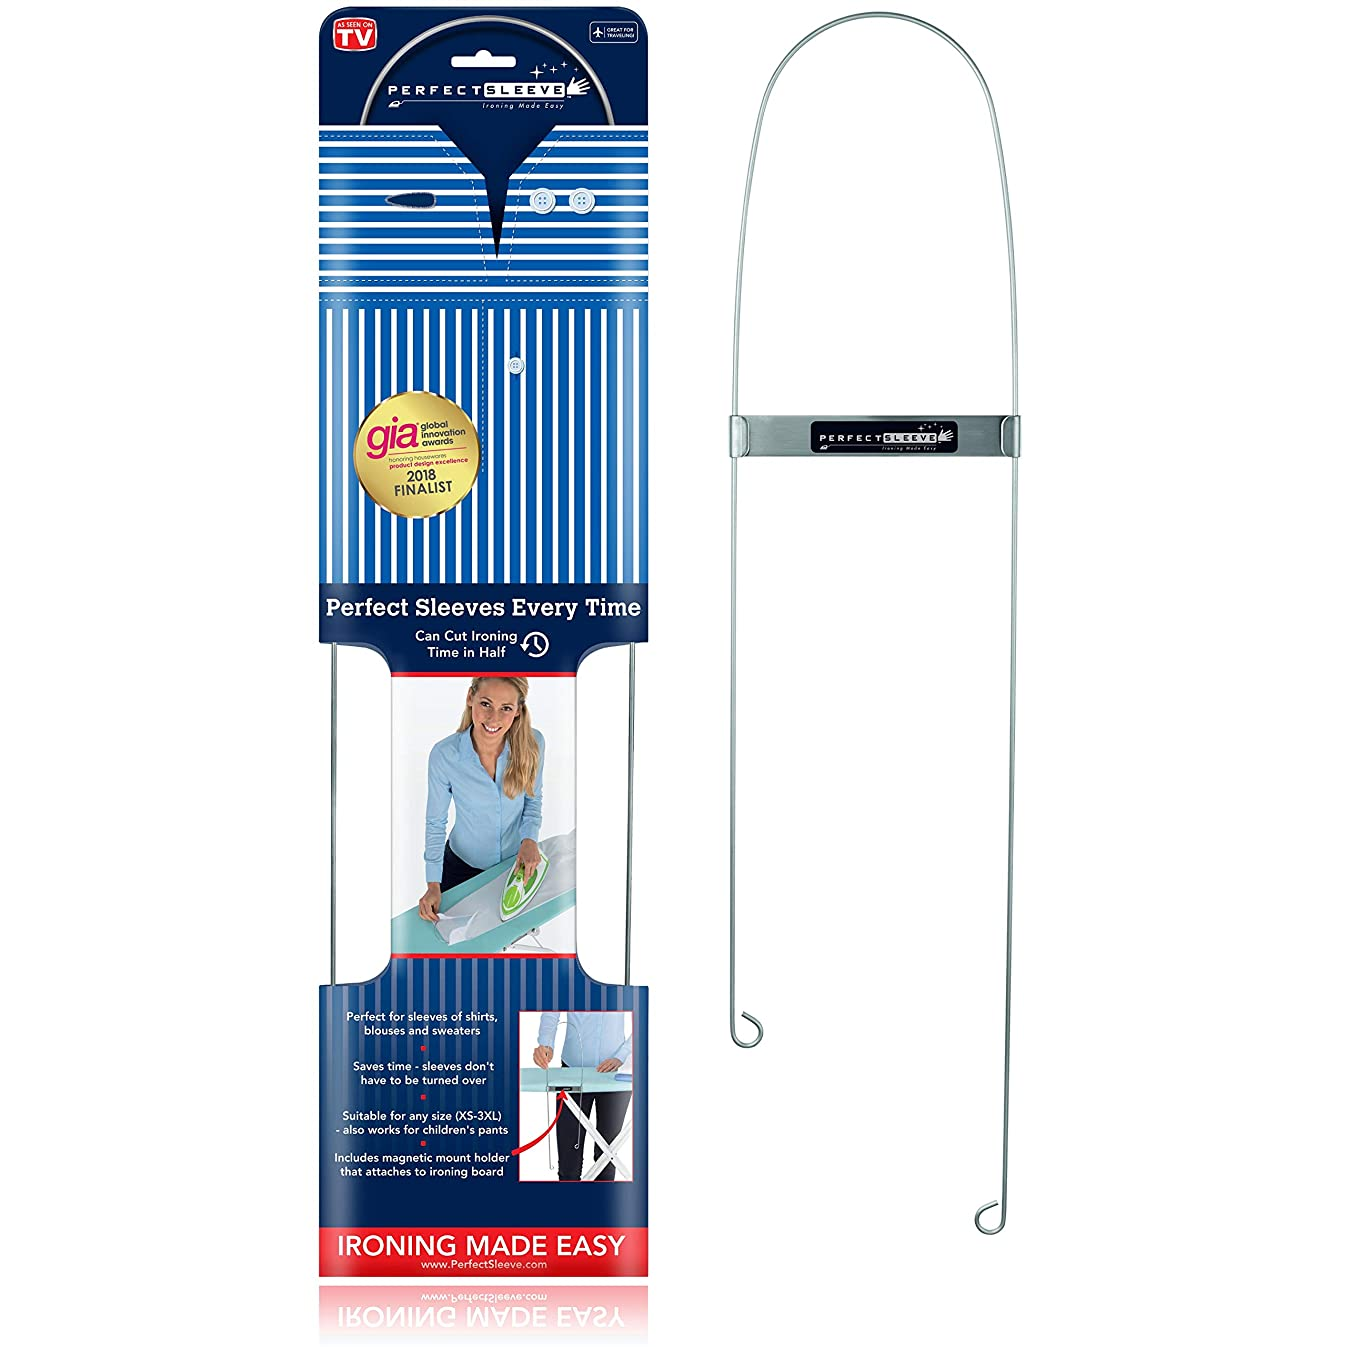 Perfect Sleeve Ironing Assistant for Wrinkle-Free Shirt Sleeves, Includes Magnetic Holder, Stainless Steel cv19036516303